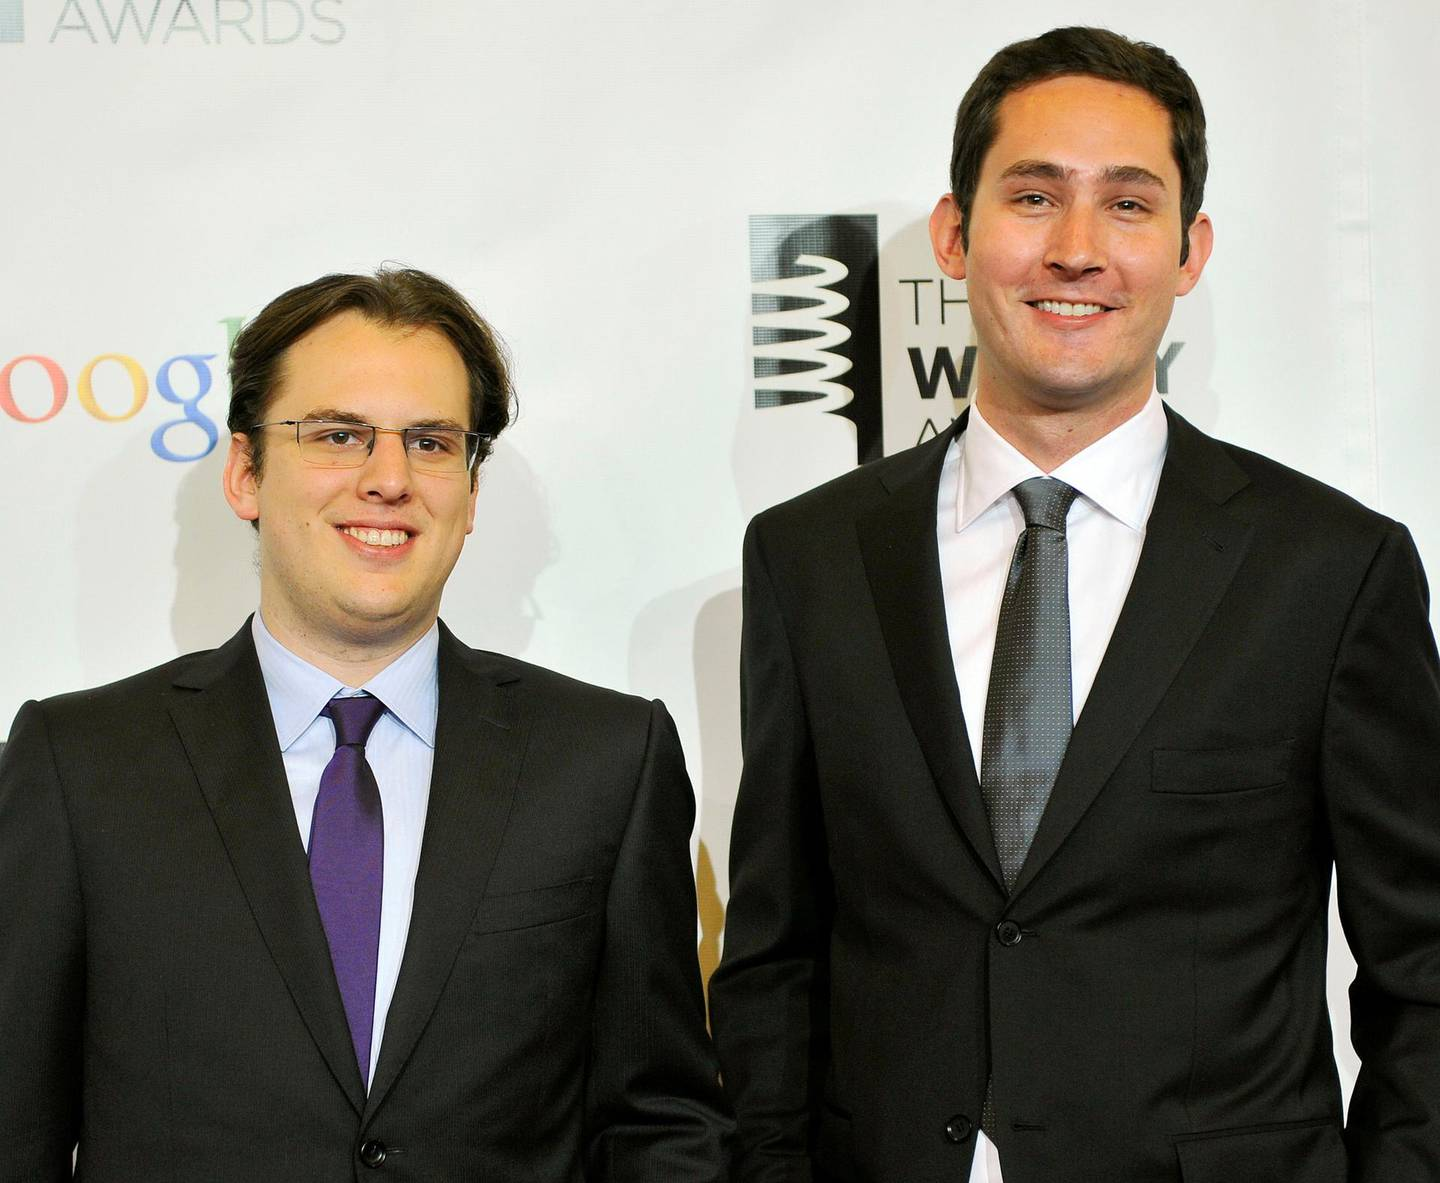 FILE PHOTO: Instagram founders Mike Krieger (L) and Kevin Systrom attend the 16th annual Webby Awards in New York May, 21 2012. REUTERS/Stephen Chernin/File Photo